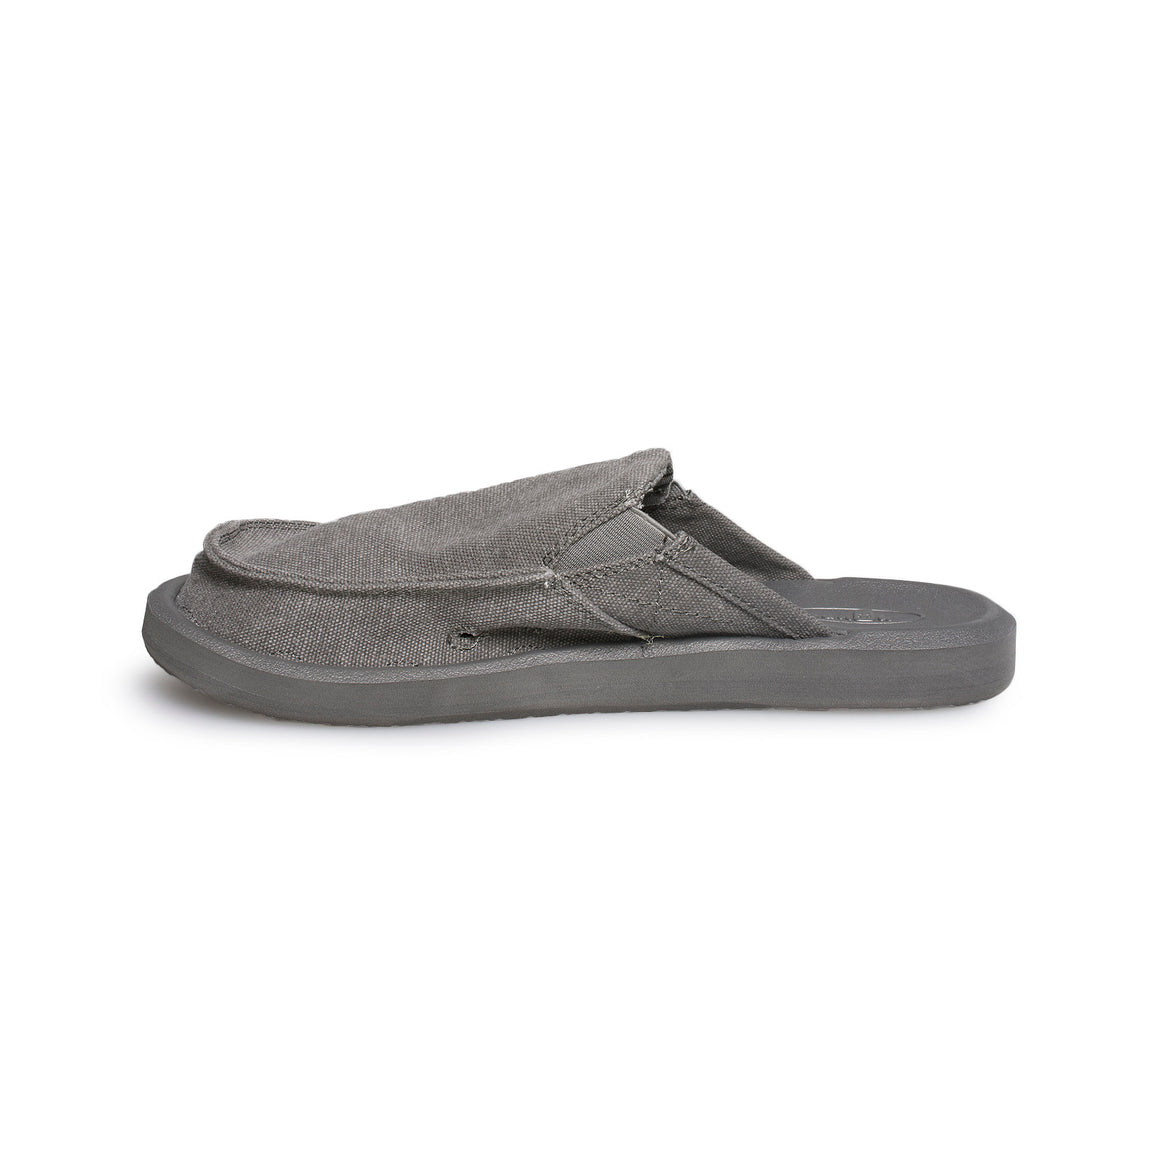 SANUK You Got My Back II Basics Grey Canvas Shoes - Men's